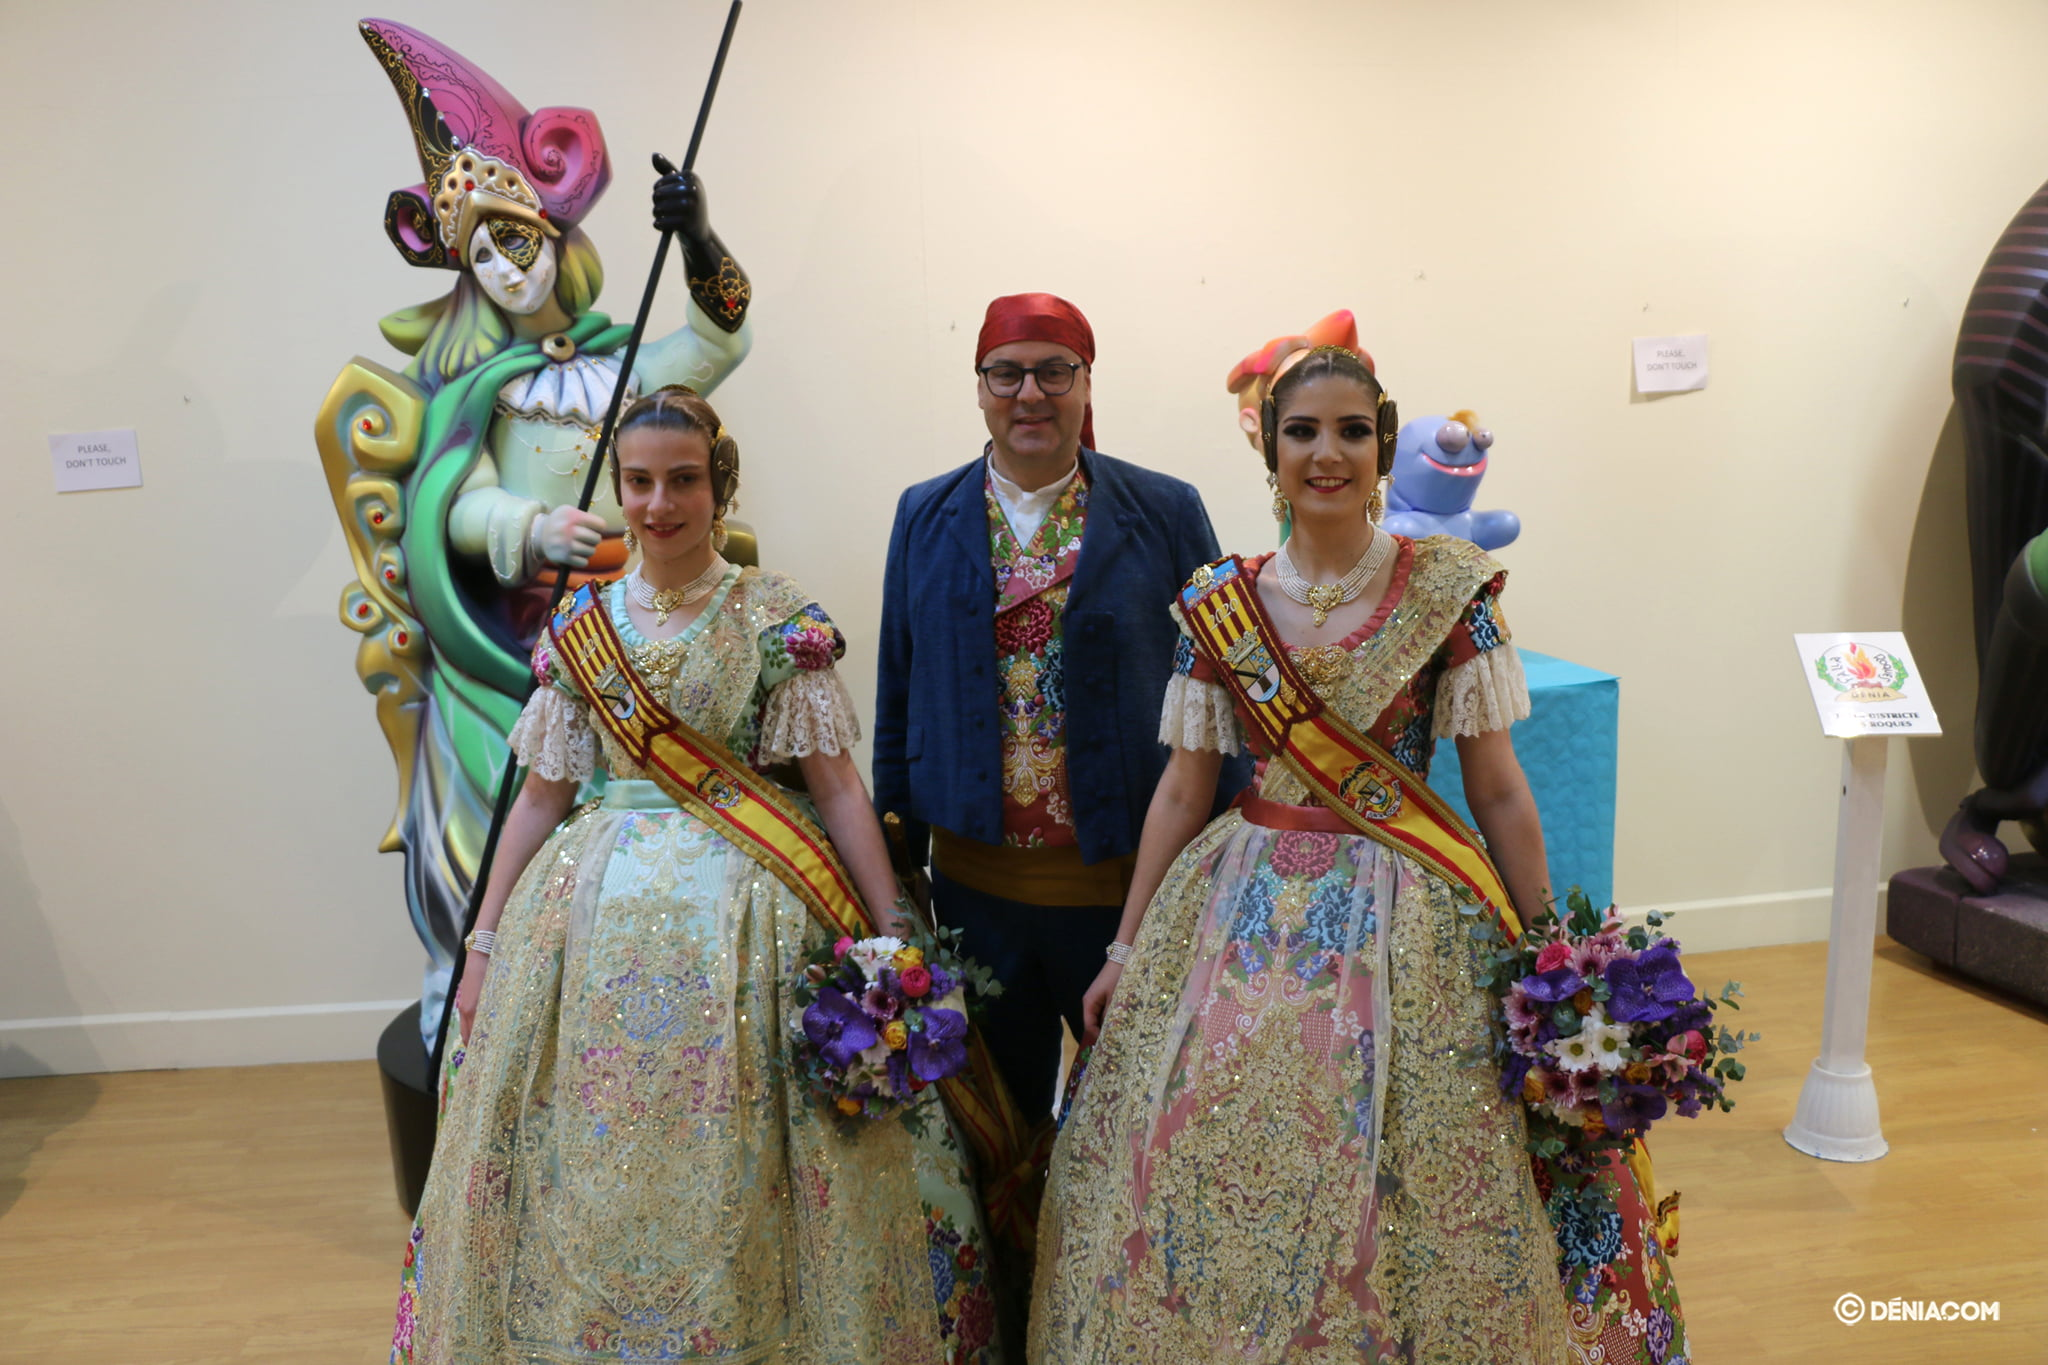 The Falleras Mayores de Dénia with the President of the Local Board Fallera